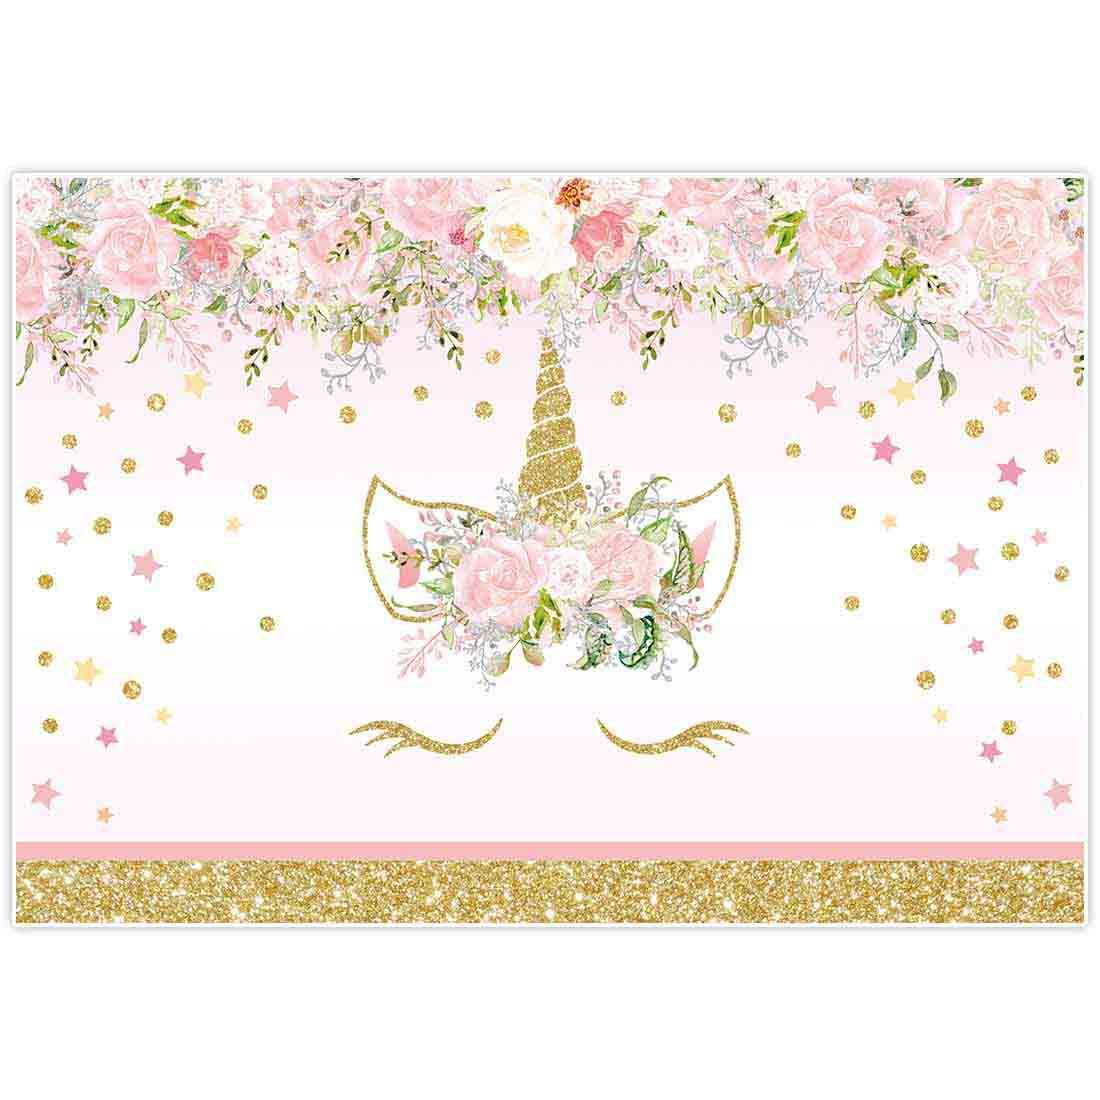 Allenjoy 8x6ft Fabric Floral Unicorn Backdrop Pink Pastel Flowers Baptism Party Supplies Golden Glitter Polka Dots Baby Shower Girls Princess 1st First Birthday Decorations Photography Props Favors